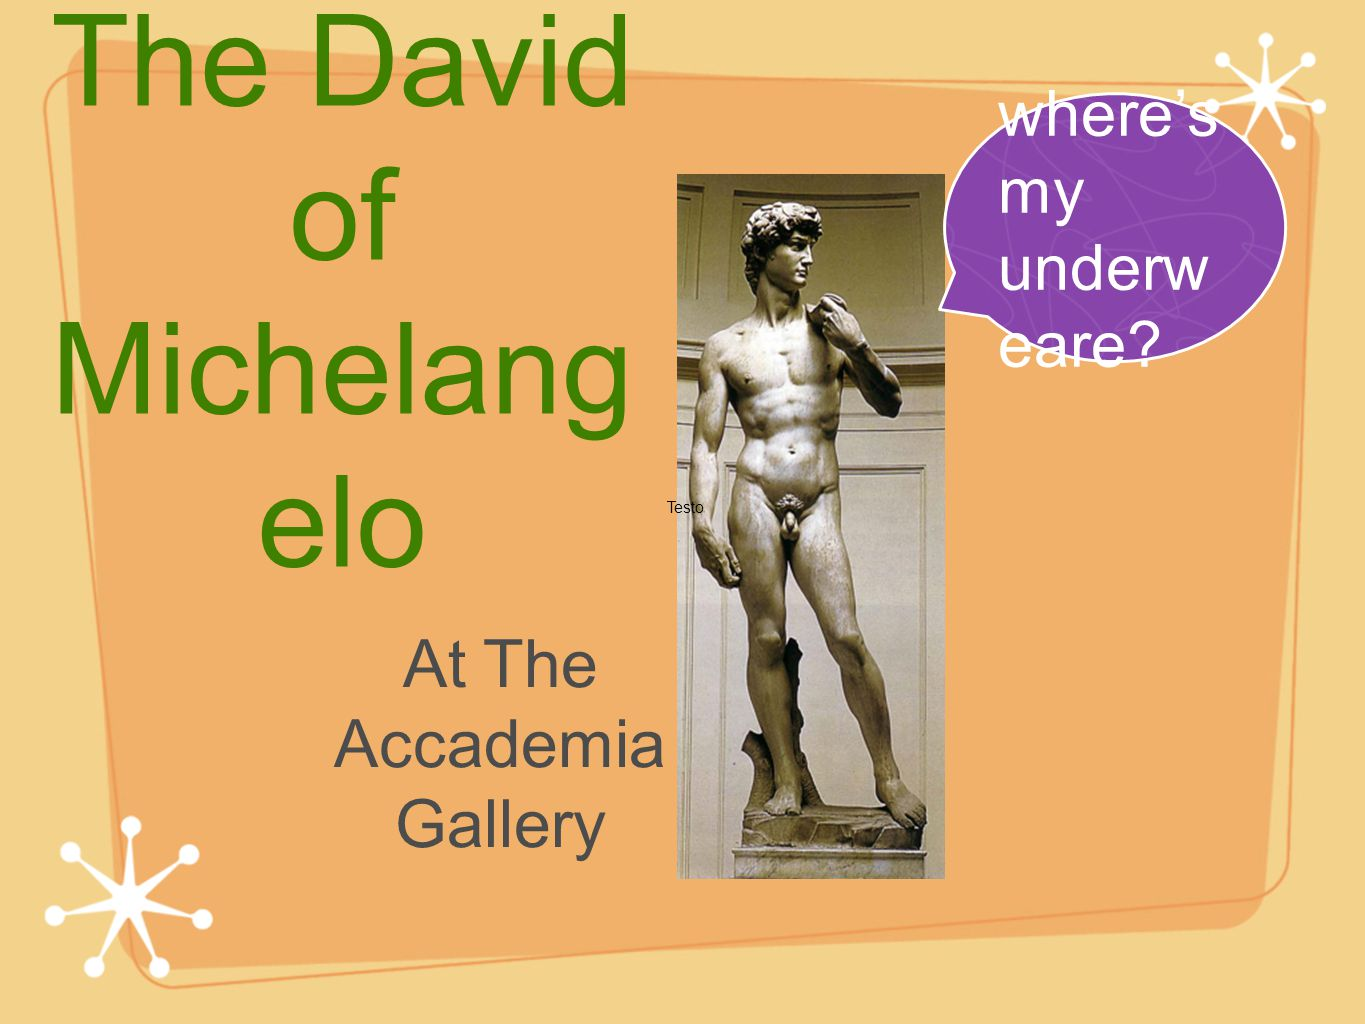 The David of Michelang elo At The Accademia Gallery wheres my underw eare? Testo